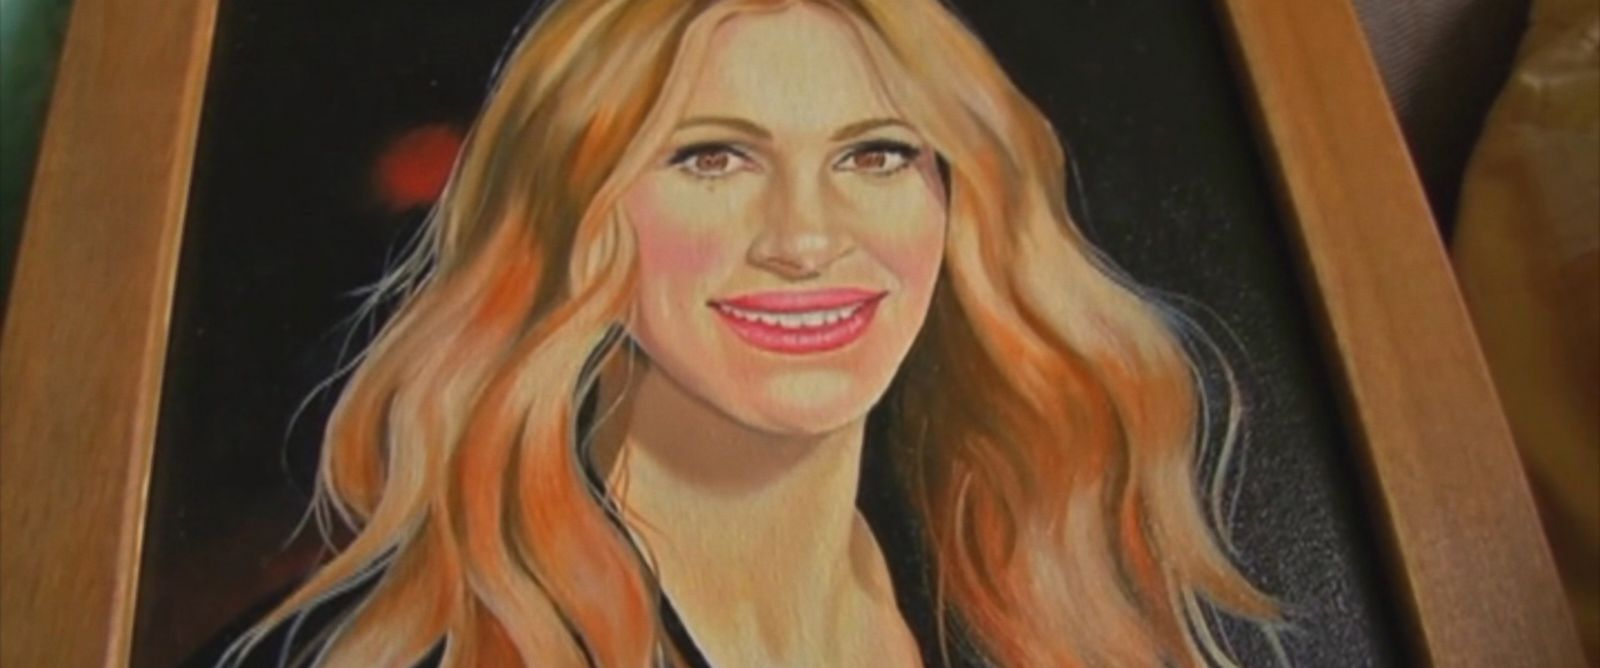 PHOTO: Richard Matt, who escaped from an upstate New York prison, had previously sent his friend John Mulligan, of Syracuse, New York, a series of paintings showing celebrity portraits.